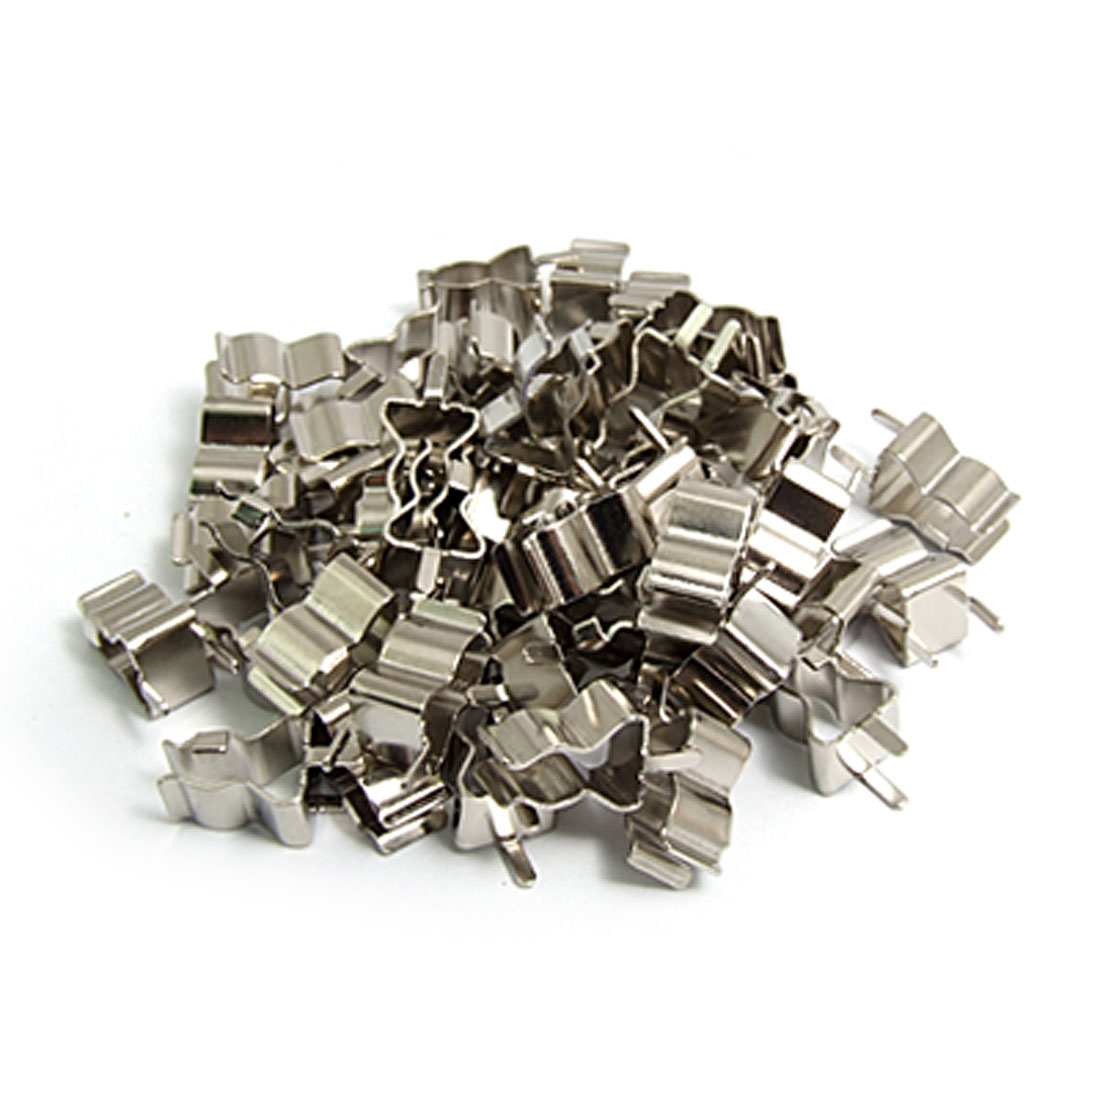 50 Pcs 6 x 30mm Electronic Glass Fuse Tube Clip Clamp